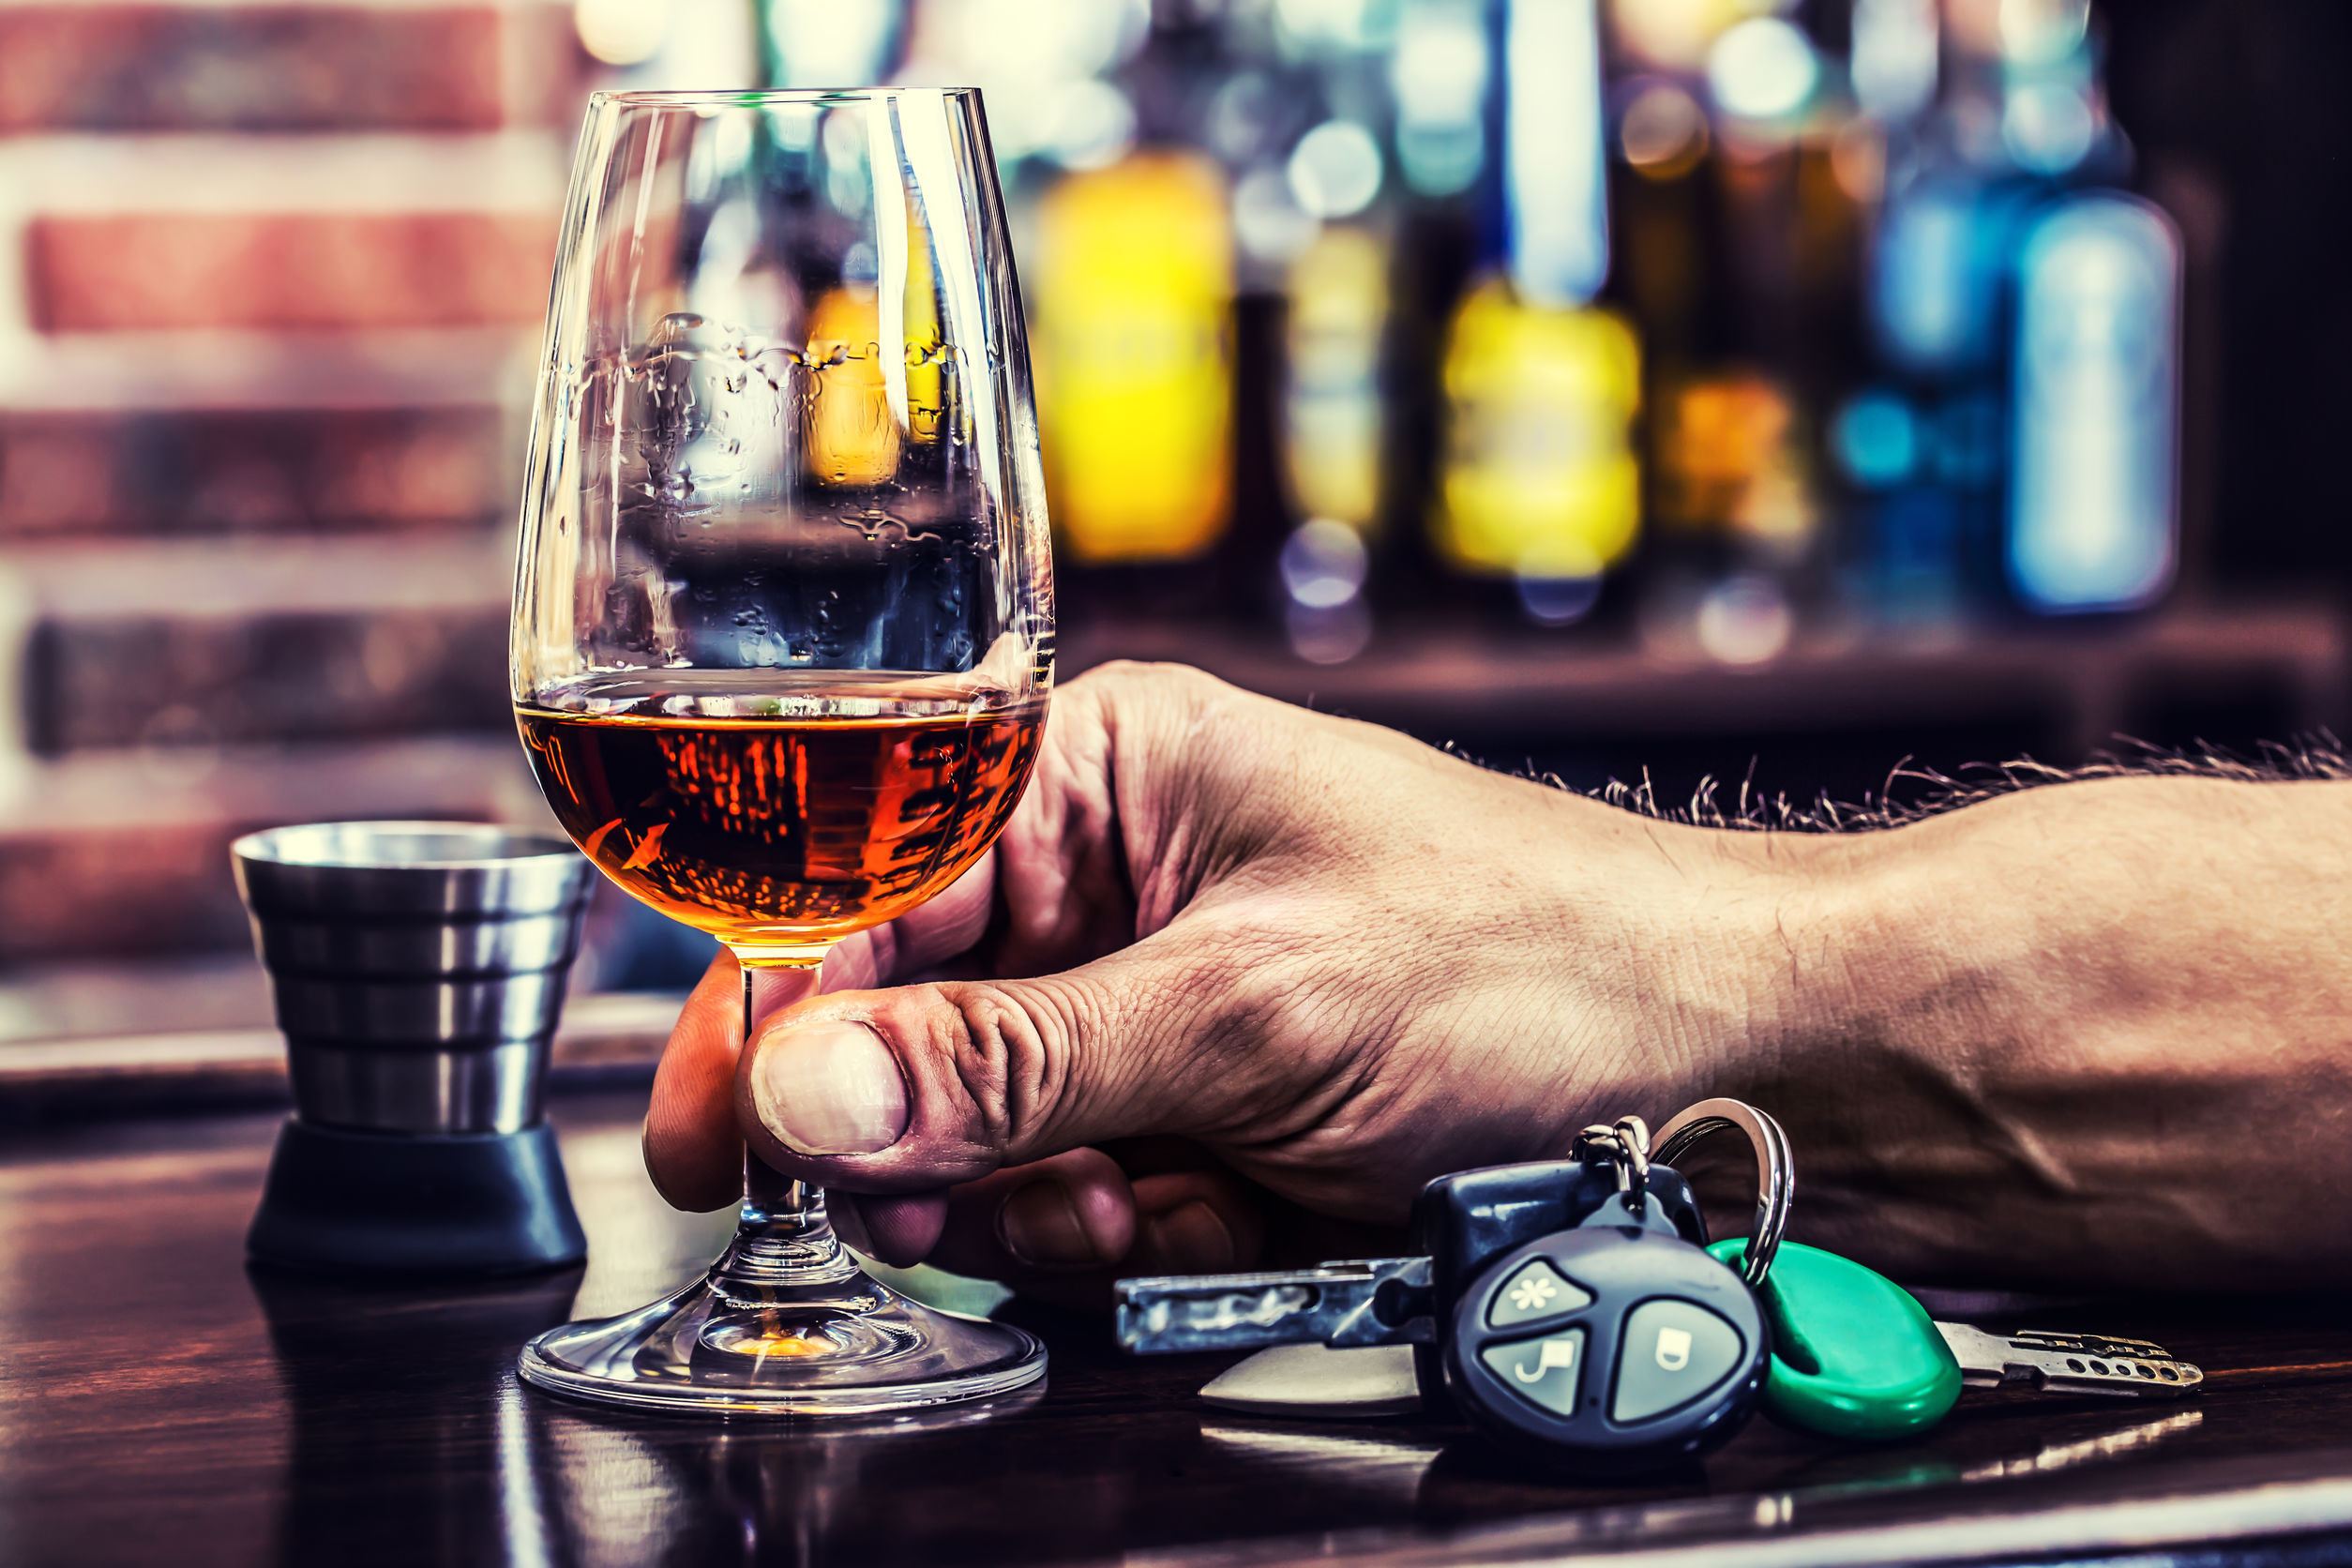 Mans hand holding alcoholic beverage with car keys next to him